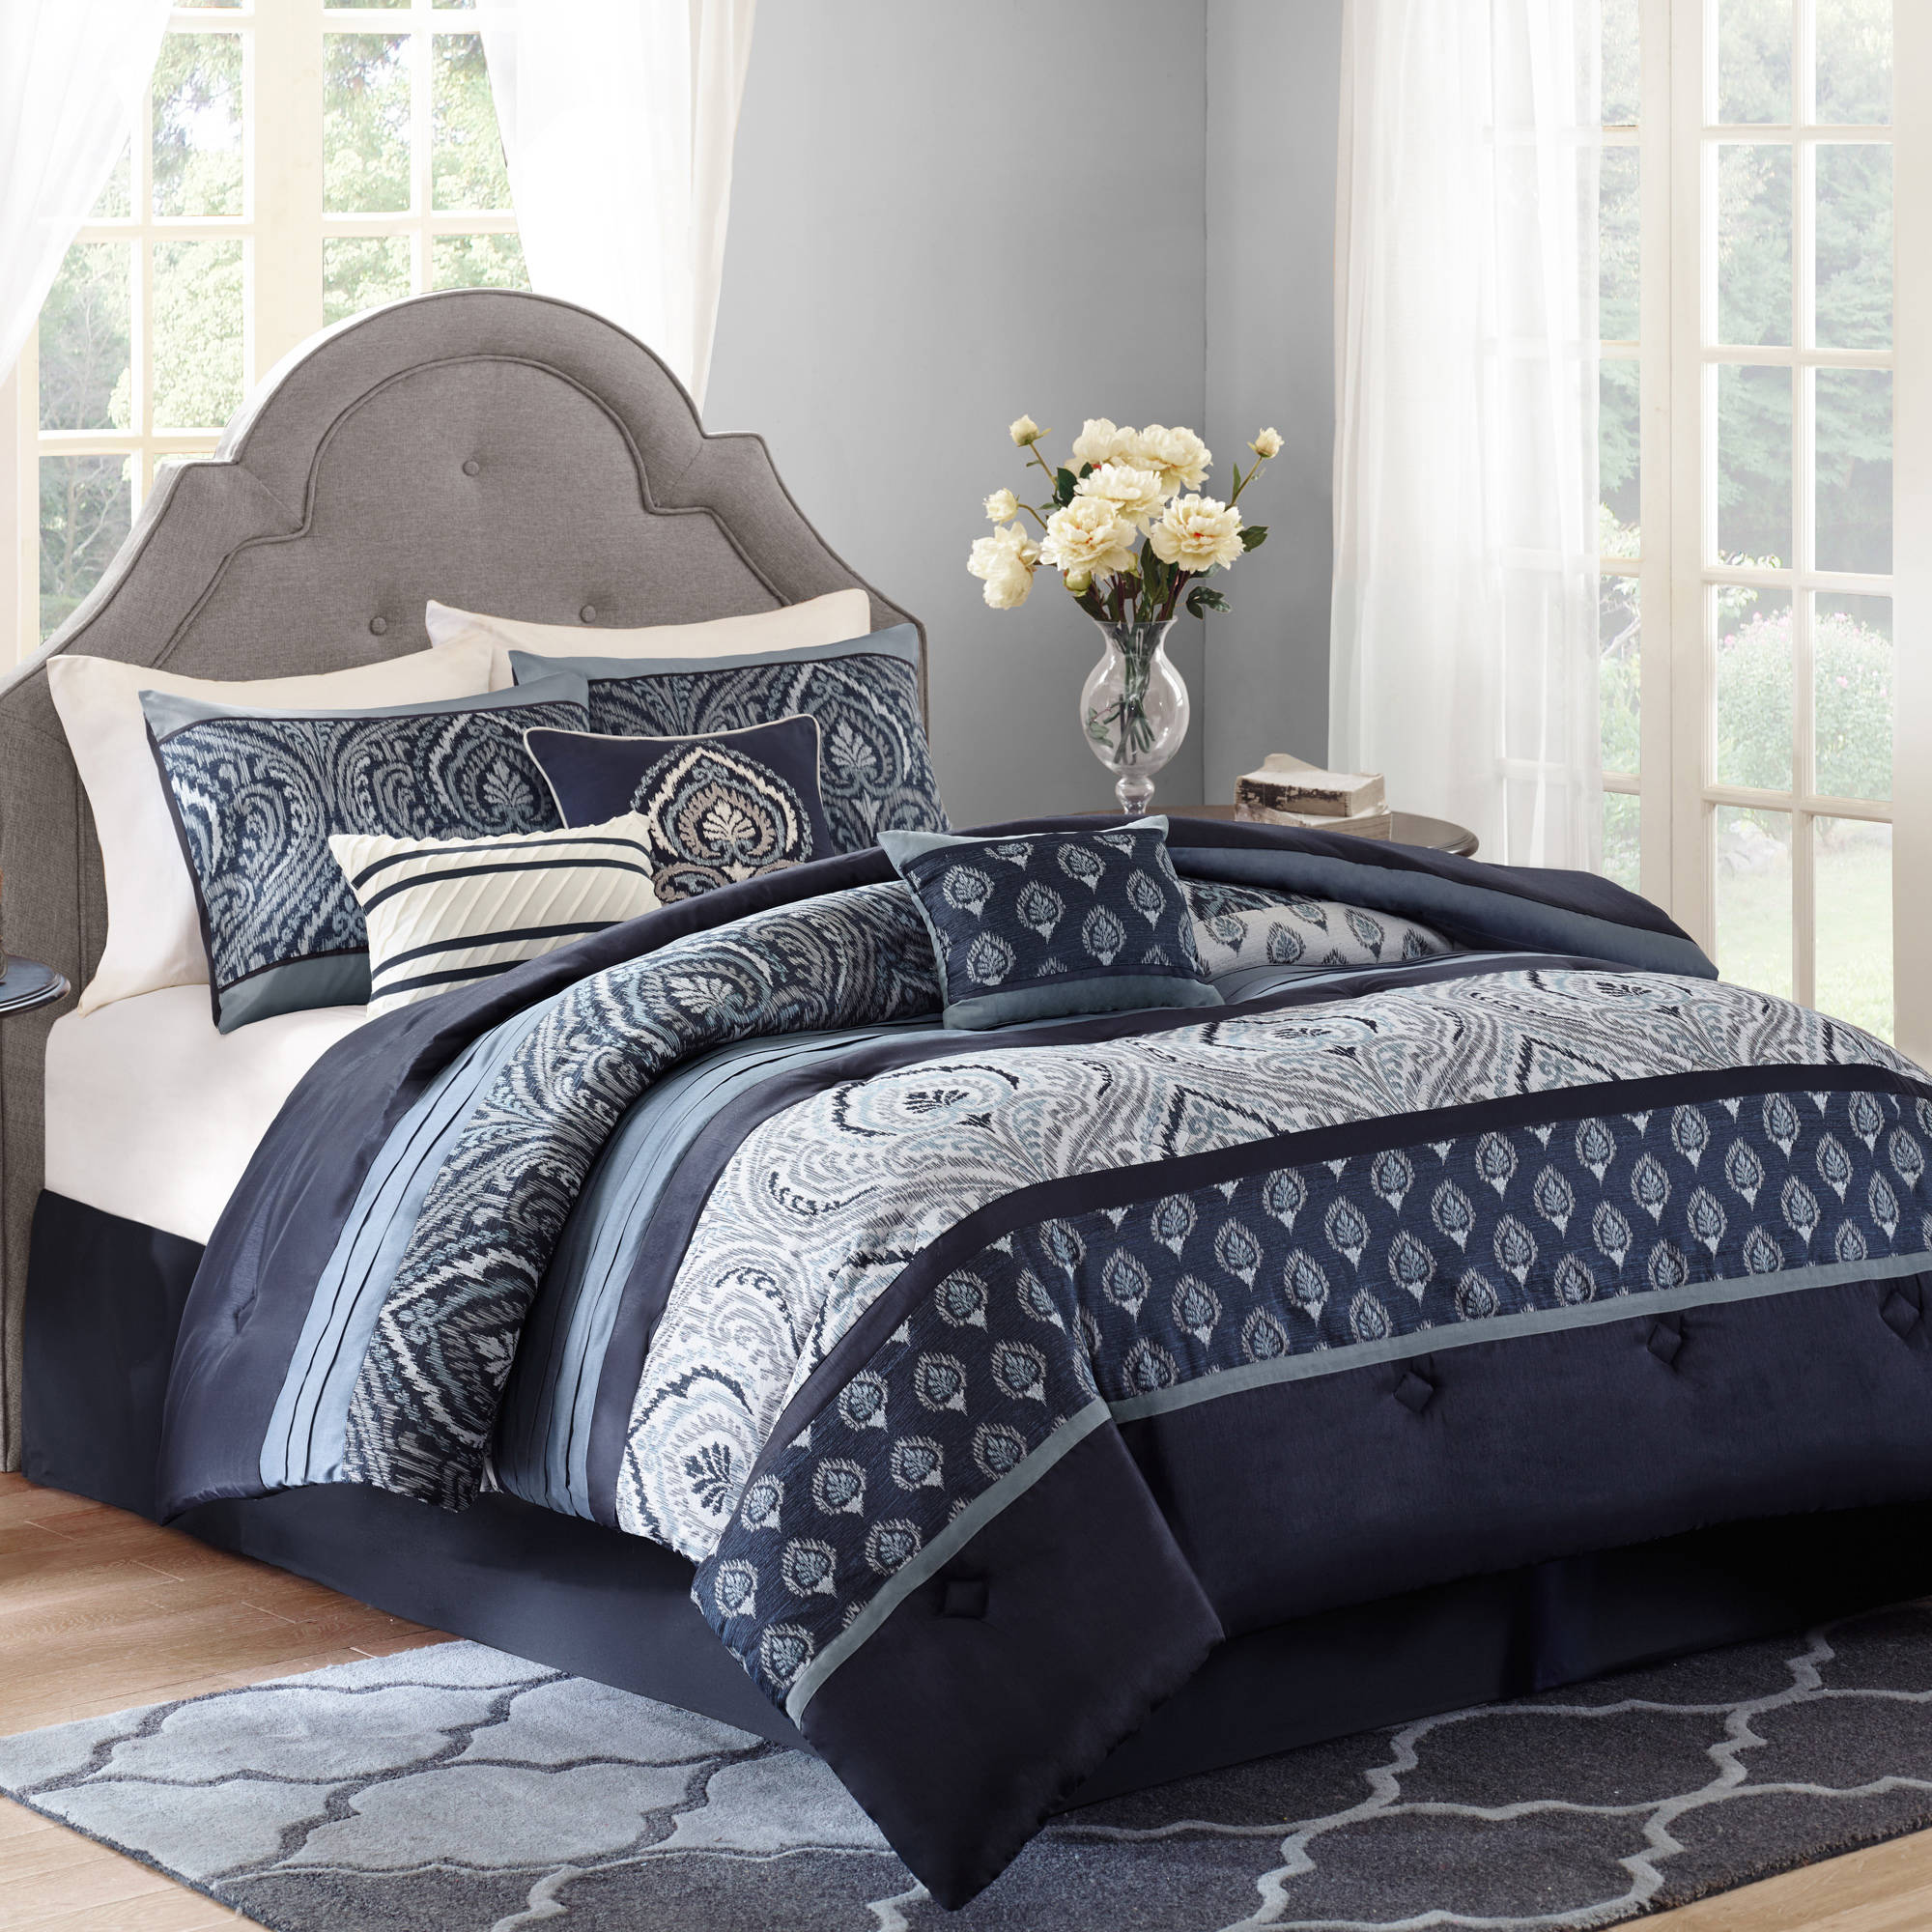 Better Homes and Gardens Bedding Walmartcom